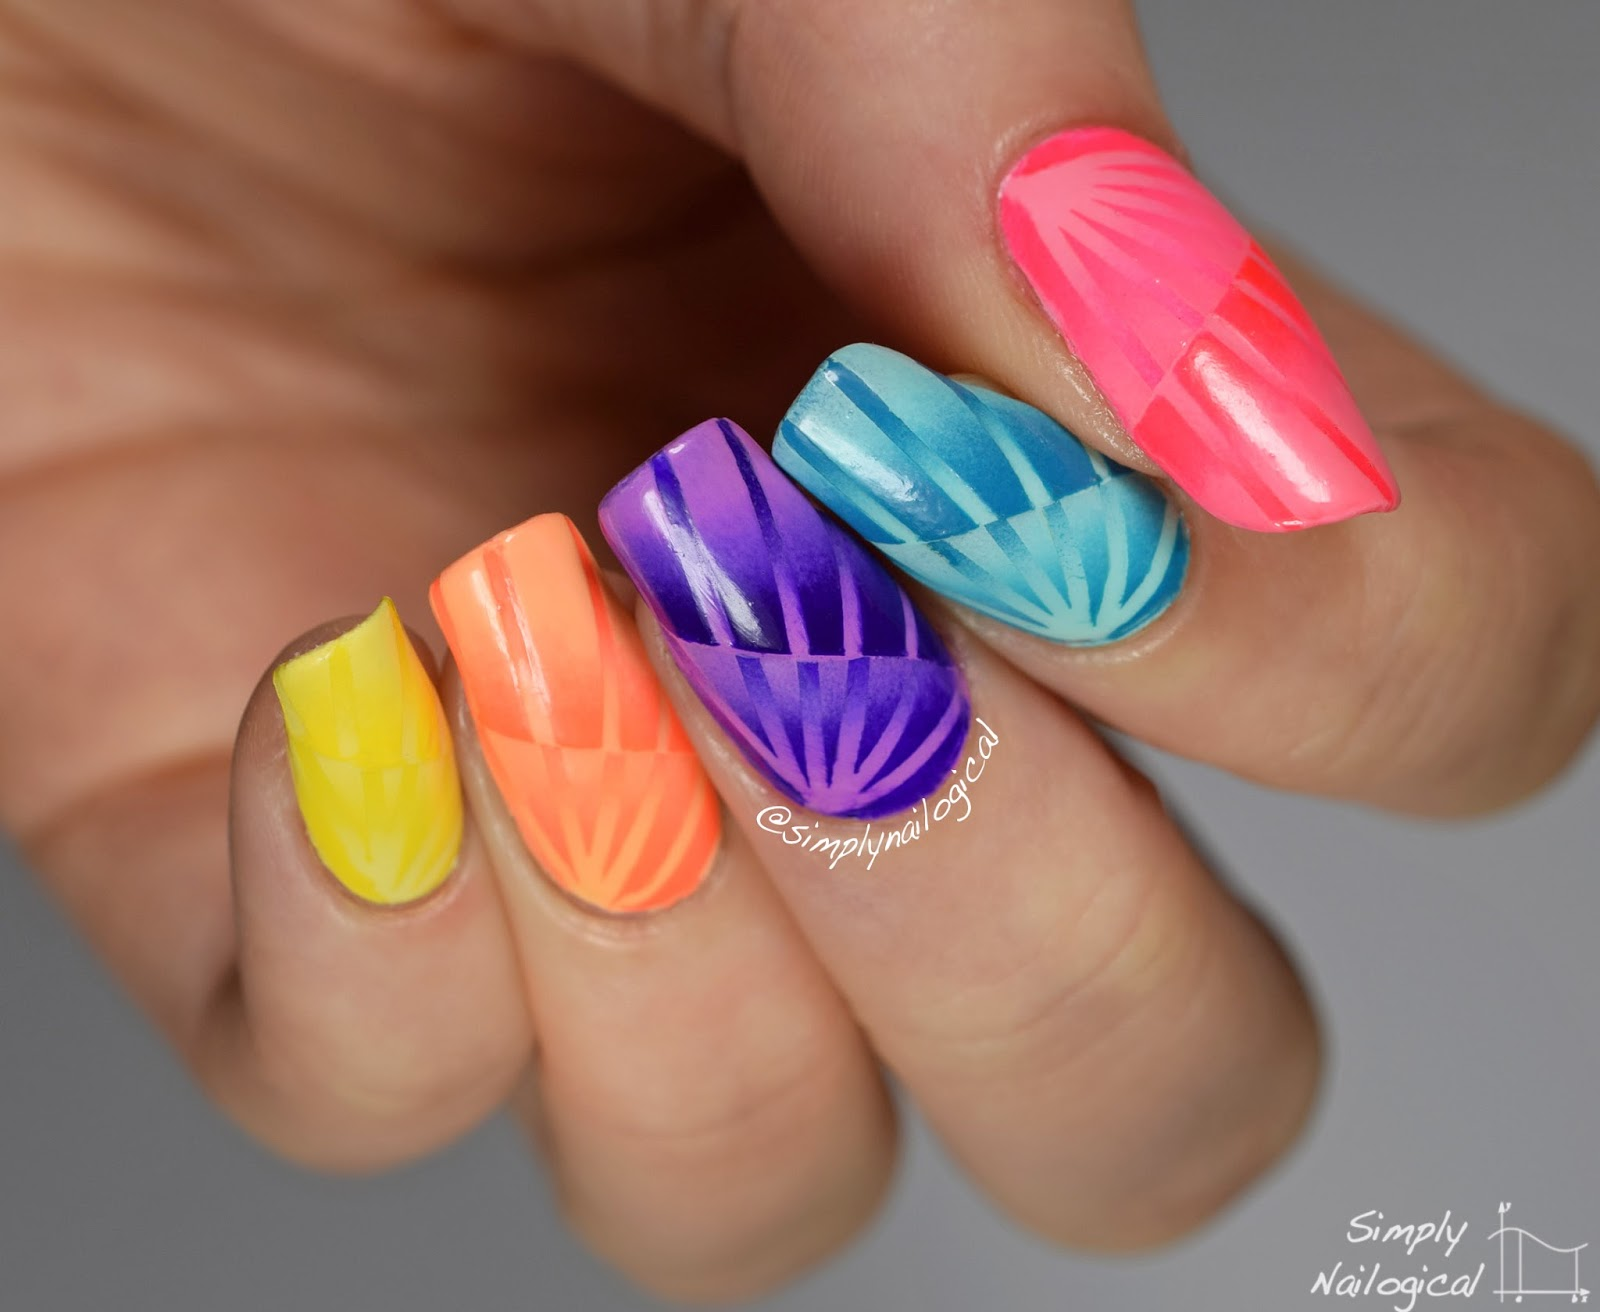 Simply Nailogical: Neon rainbow reciprocal scaled gradient